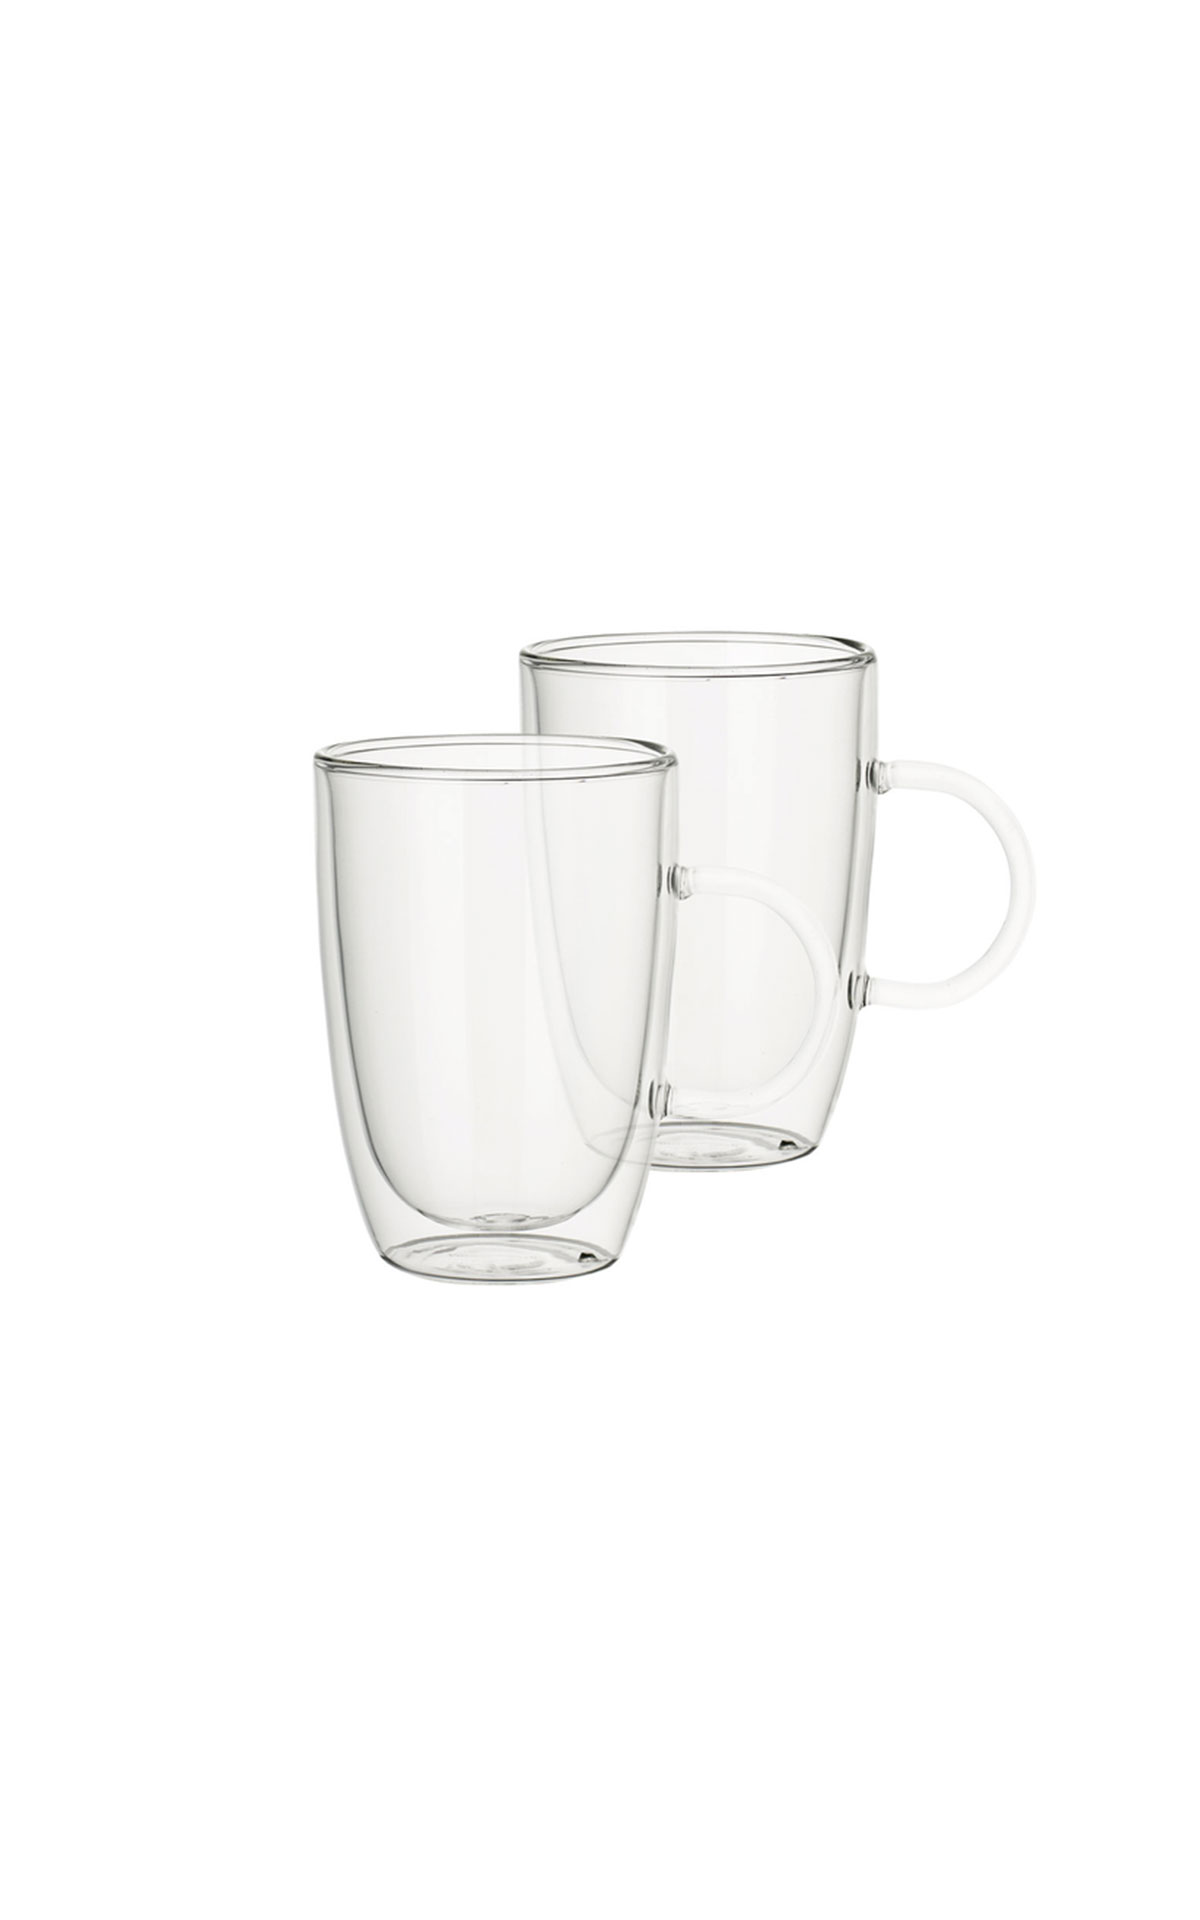 Villeroy & Boch Artes. hot/cold beverage universal cup from Bicester Village